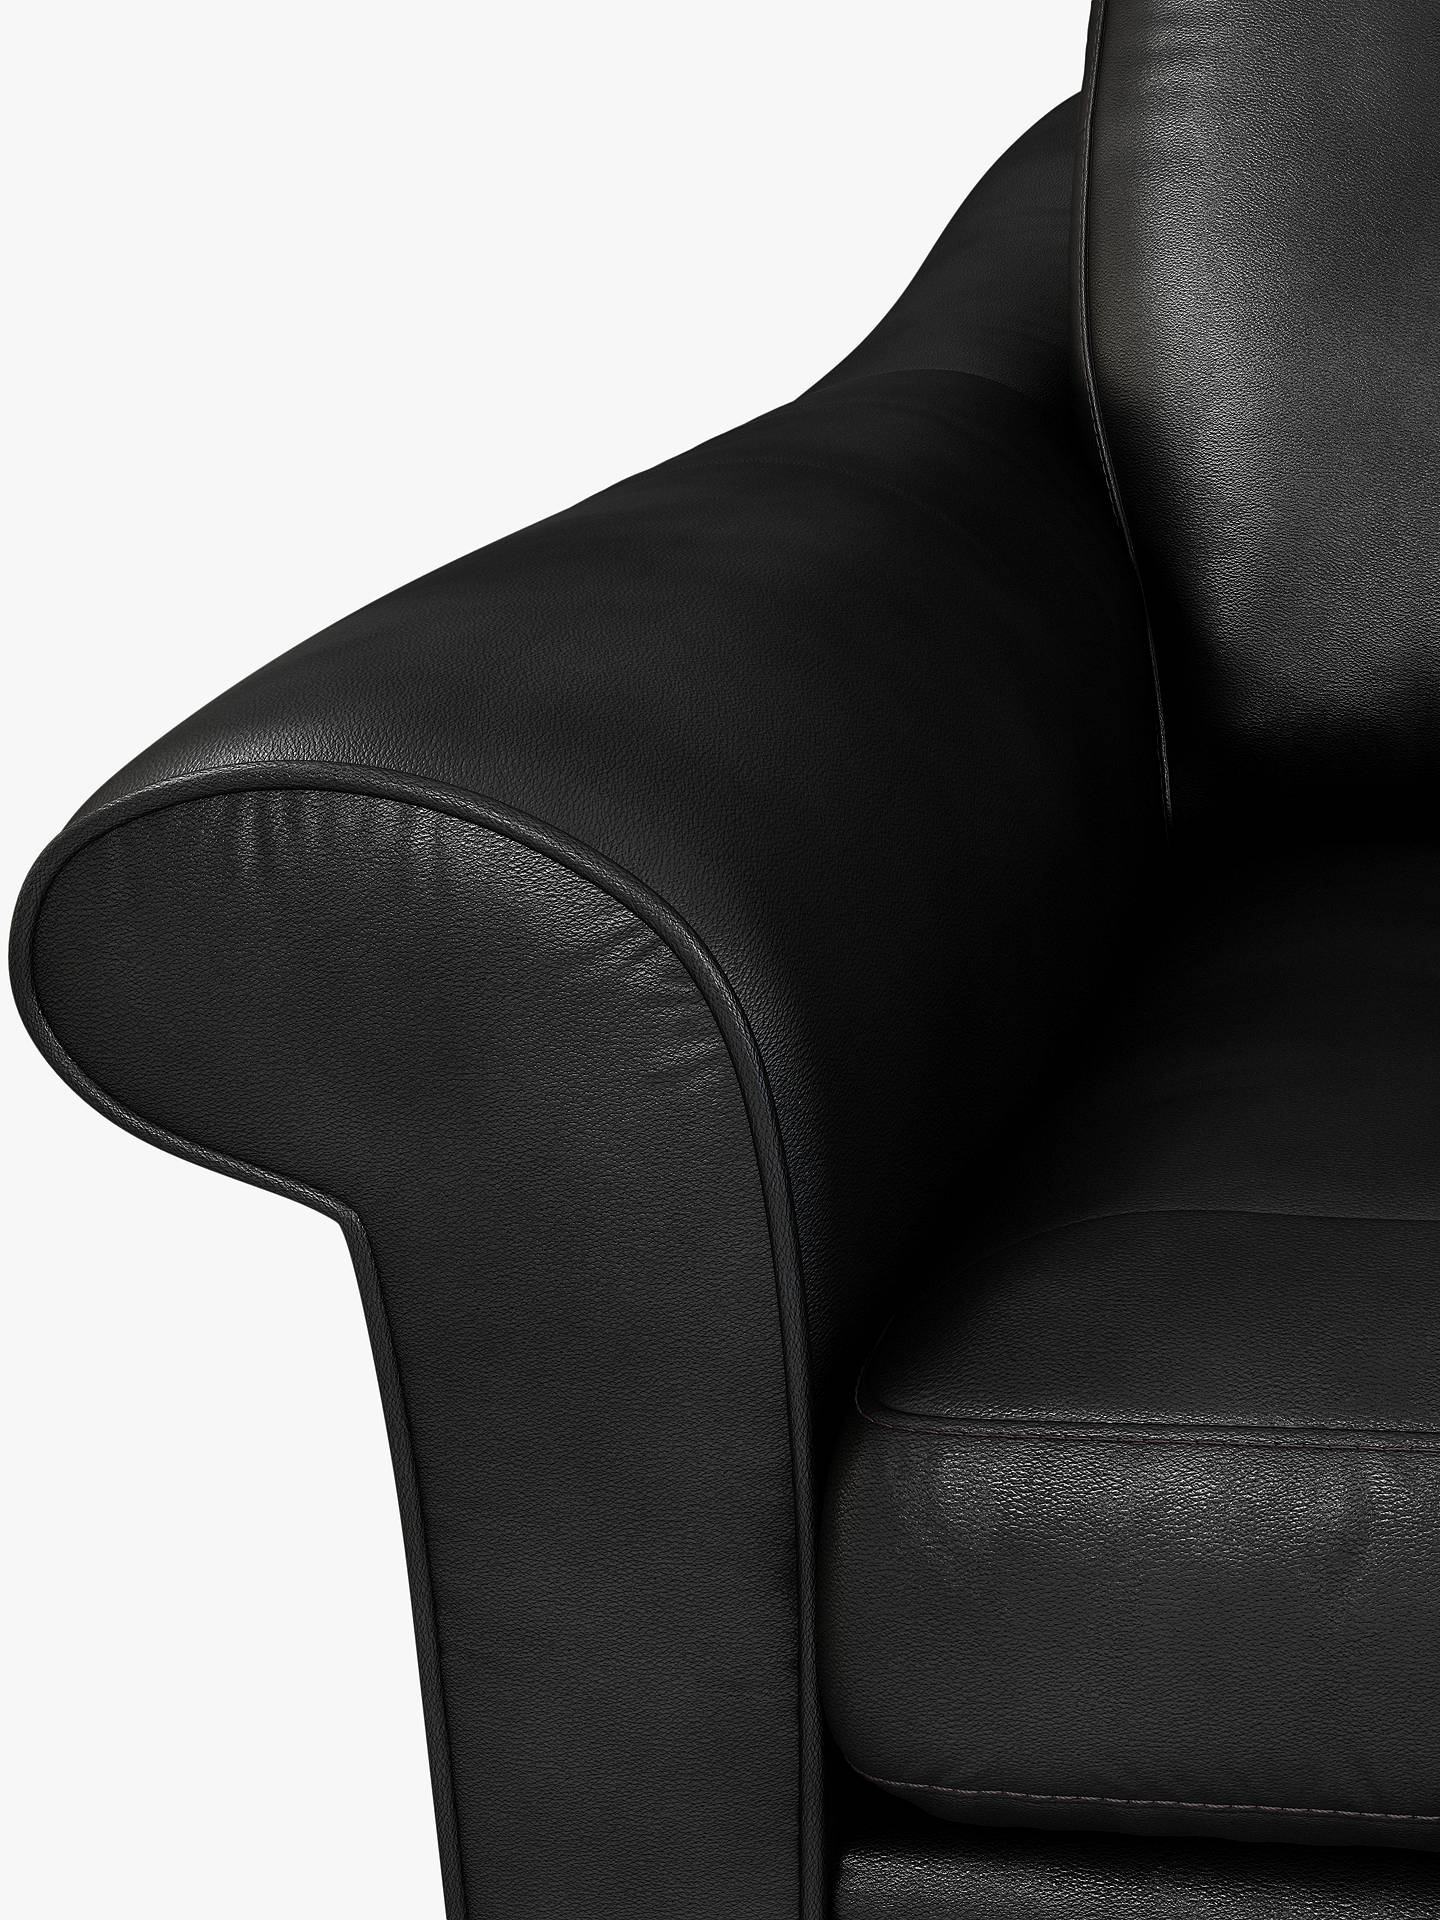 Buy John Lewis & Partners Camber Small 2 Seater Leather Sofa, Dark Leg, Nature Black Online at johnlewis.com